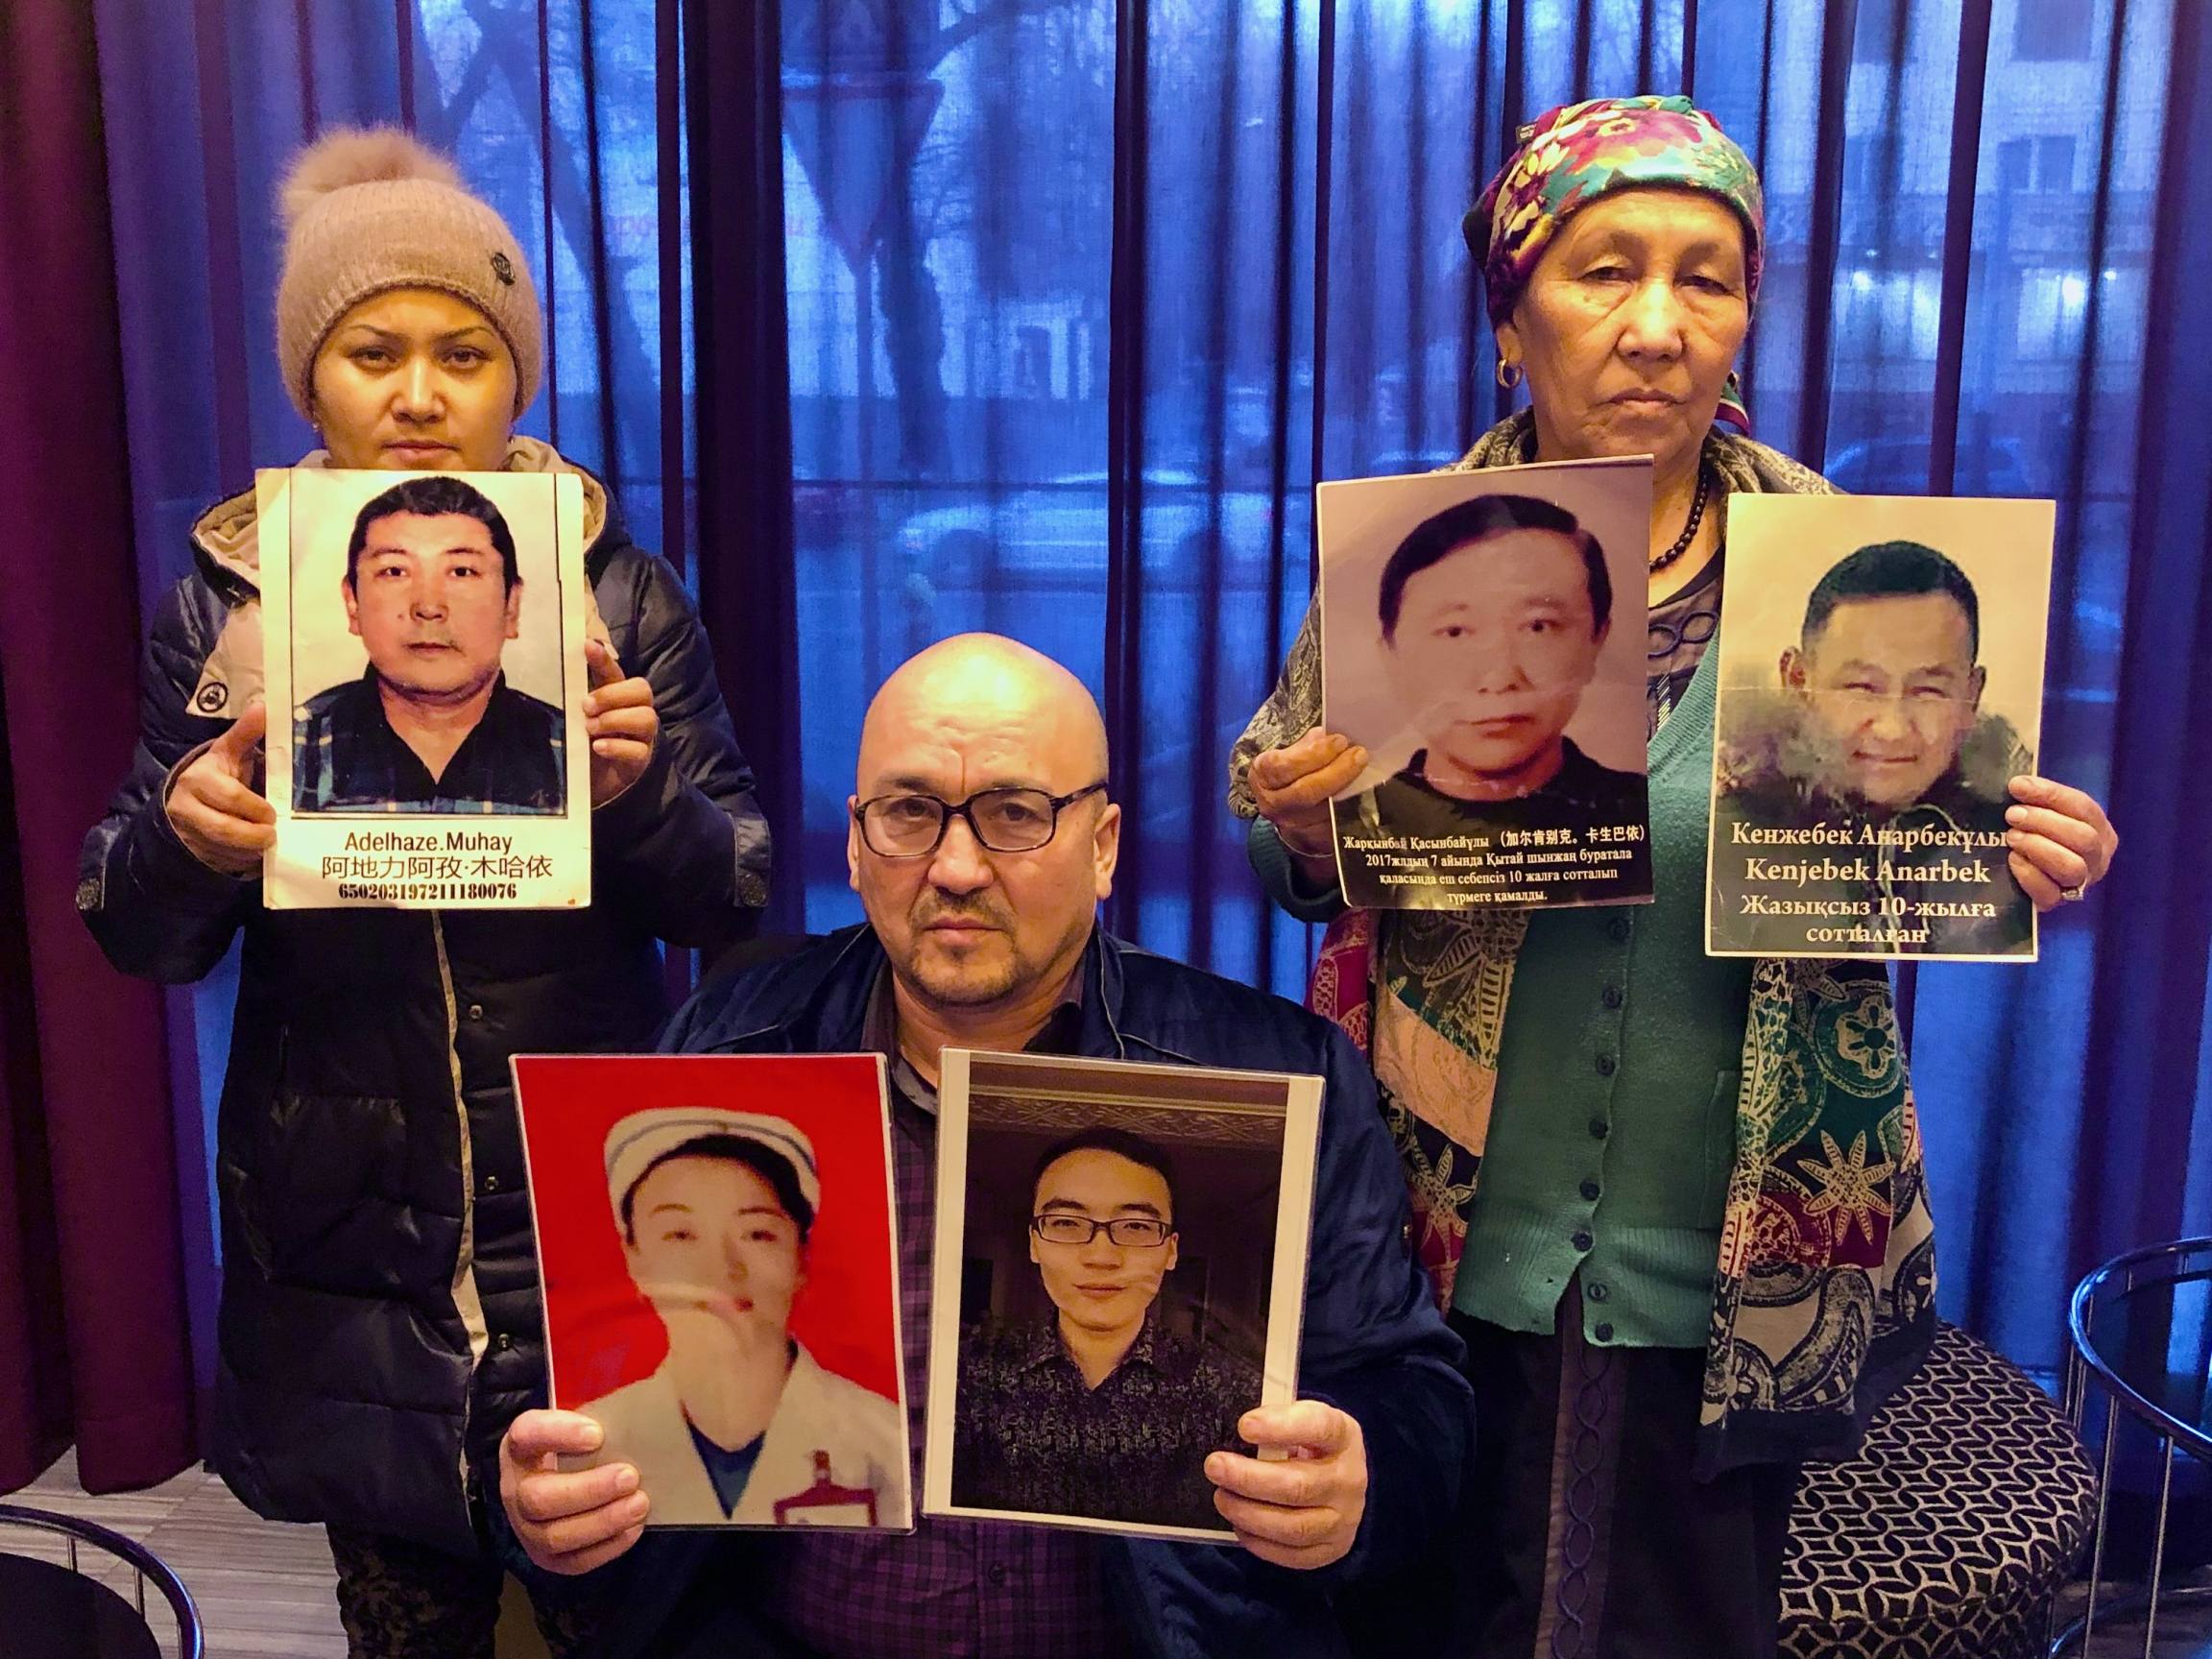 Kazakhs in Almaty hold up photos of their relatives being held in detention in Xinjiang, China.